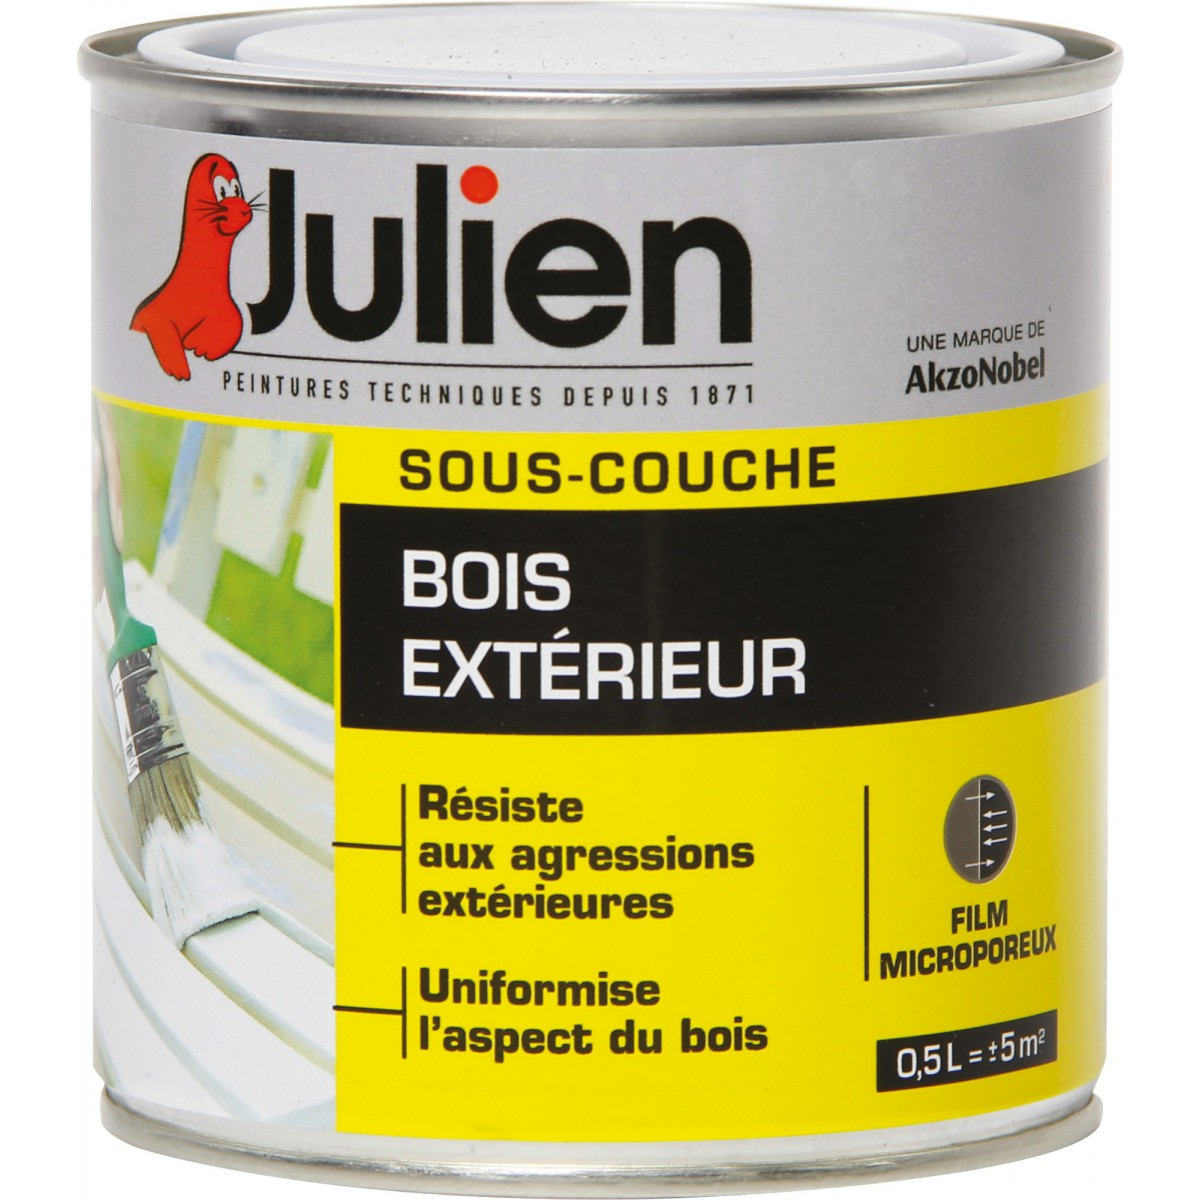 sous couche julien bois ext rieur j3 500 ml de peinture sous couche. Black Bedroom Furniture Sets. Home Design Ideas